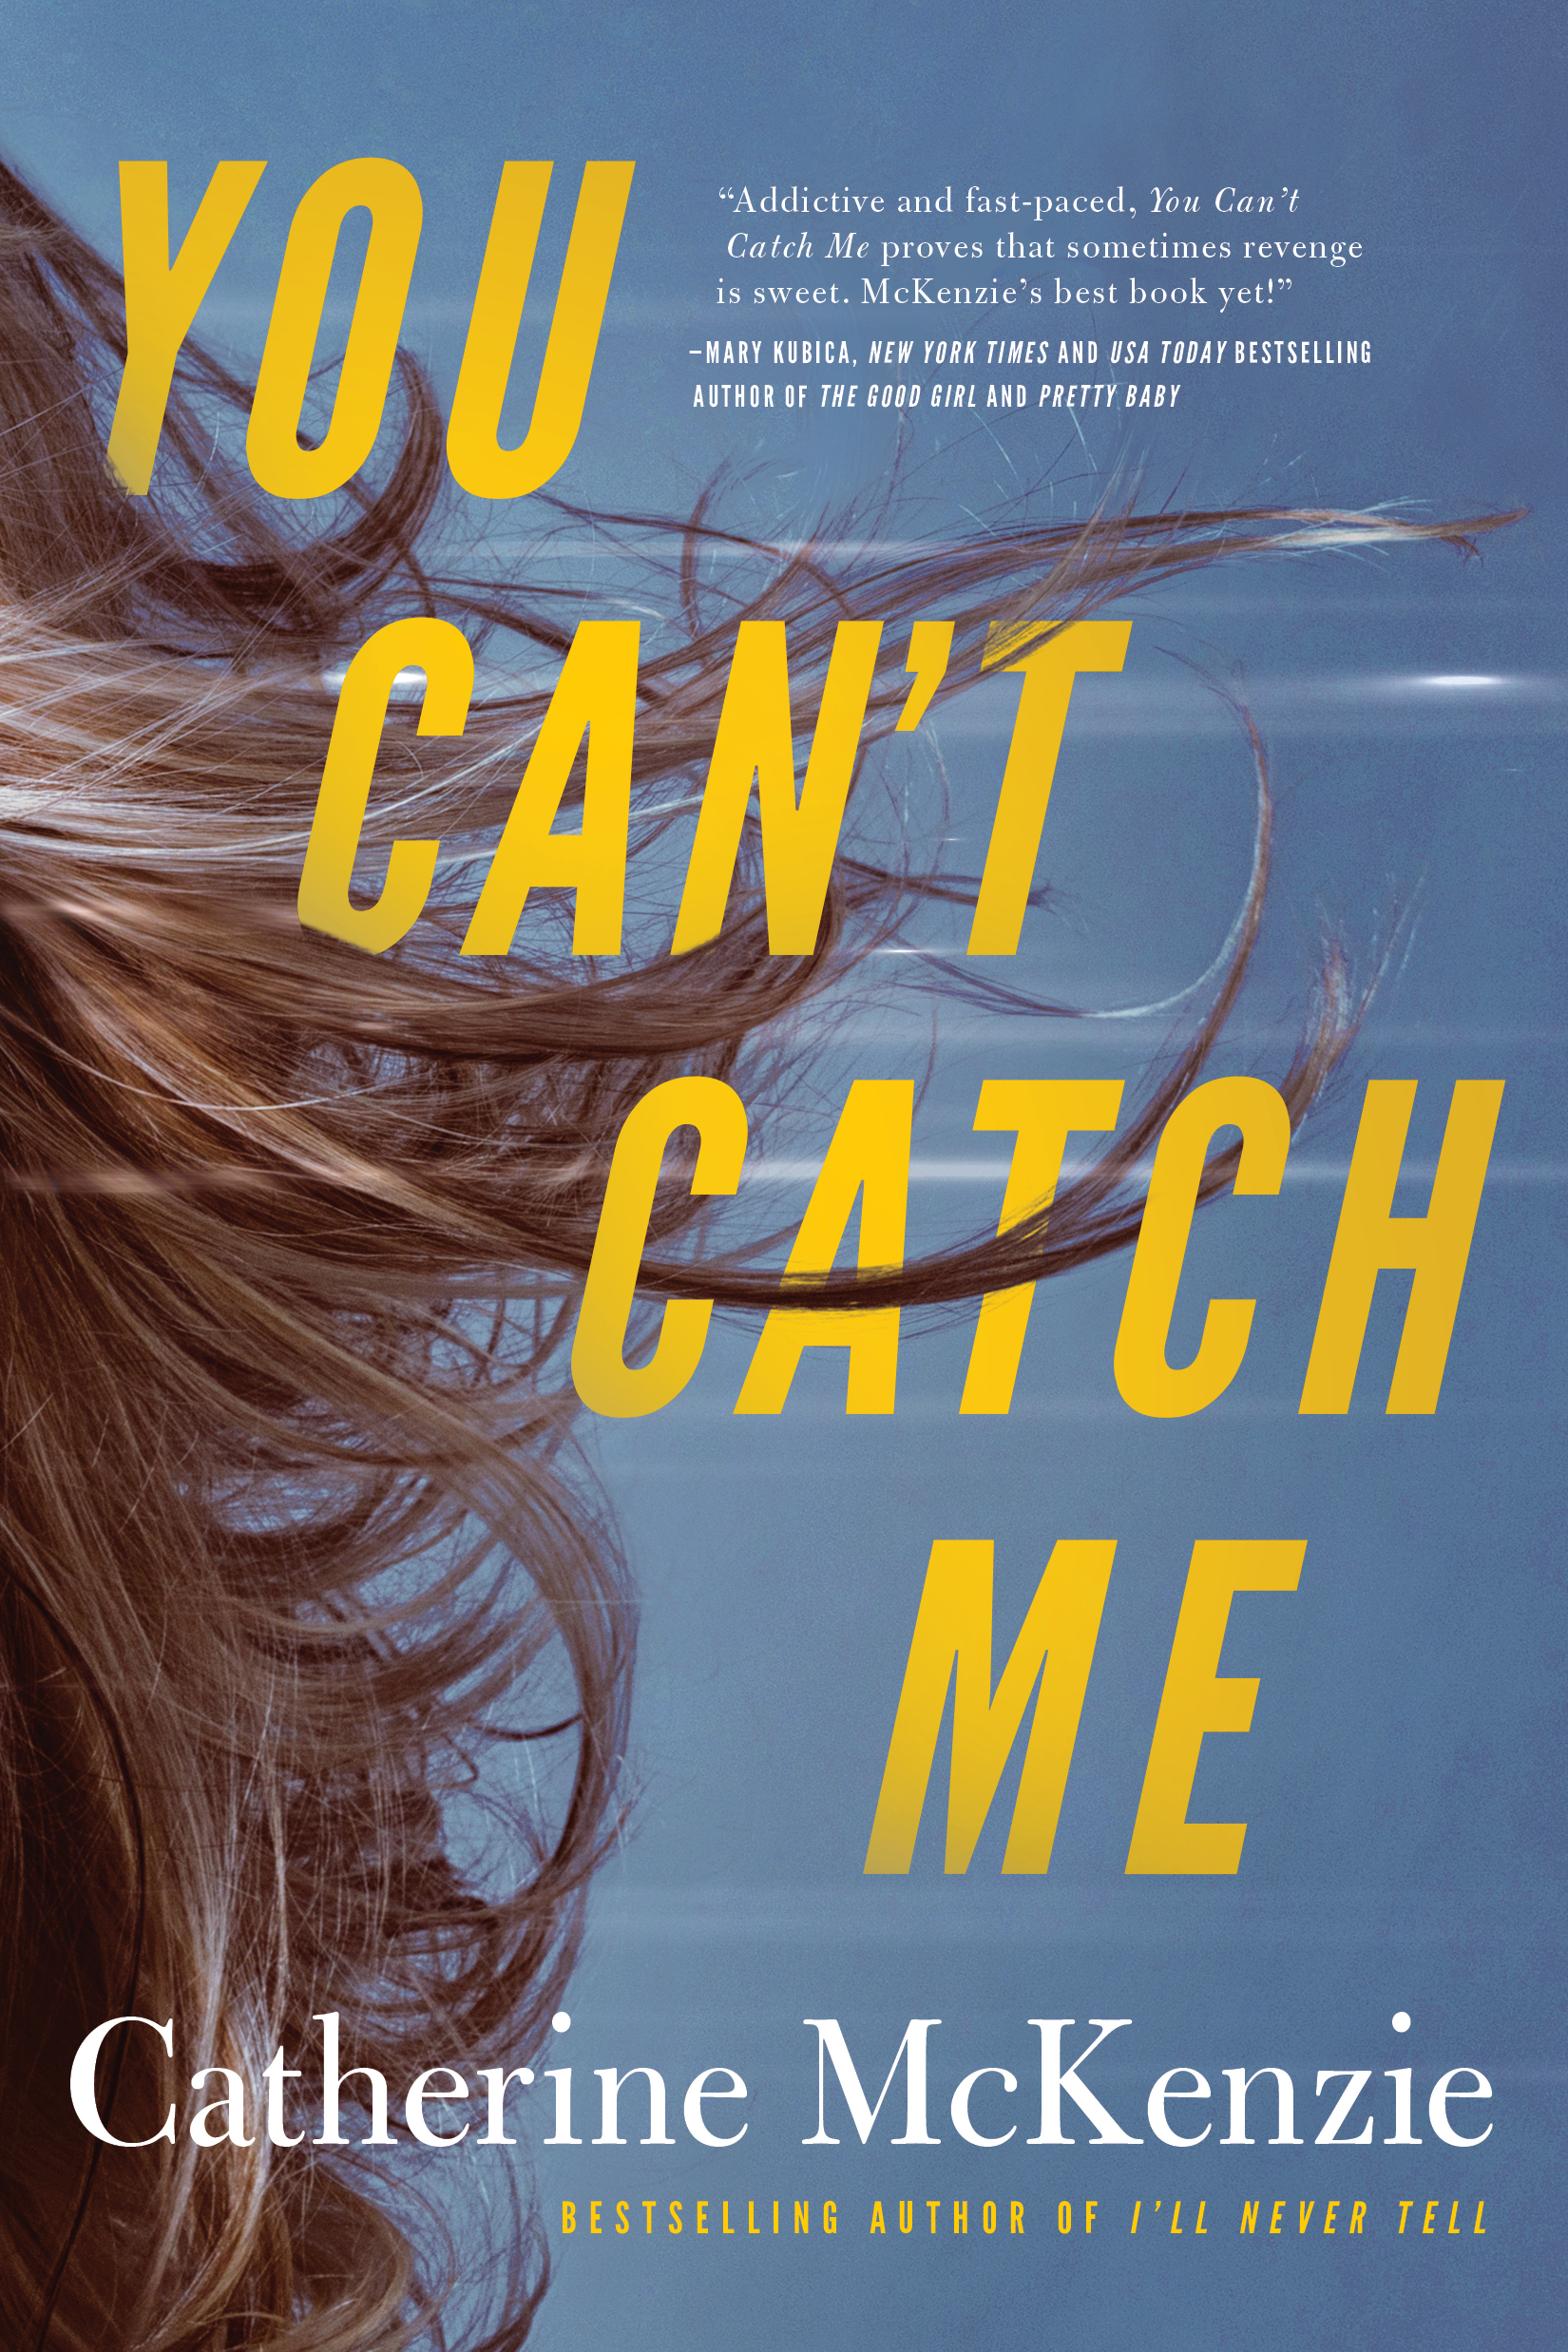 You Cant Catch Me - Catherine McKenzie